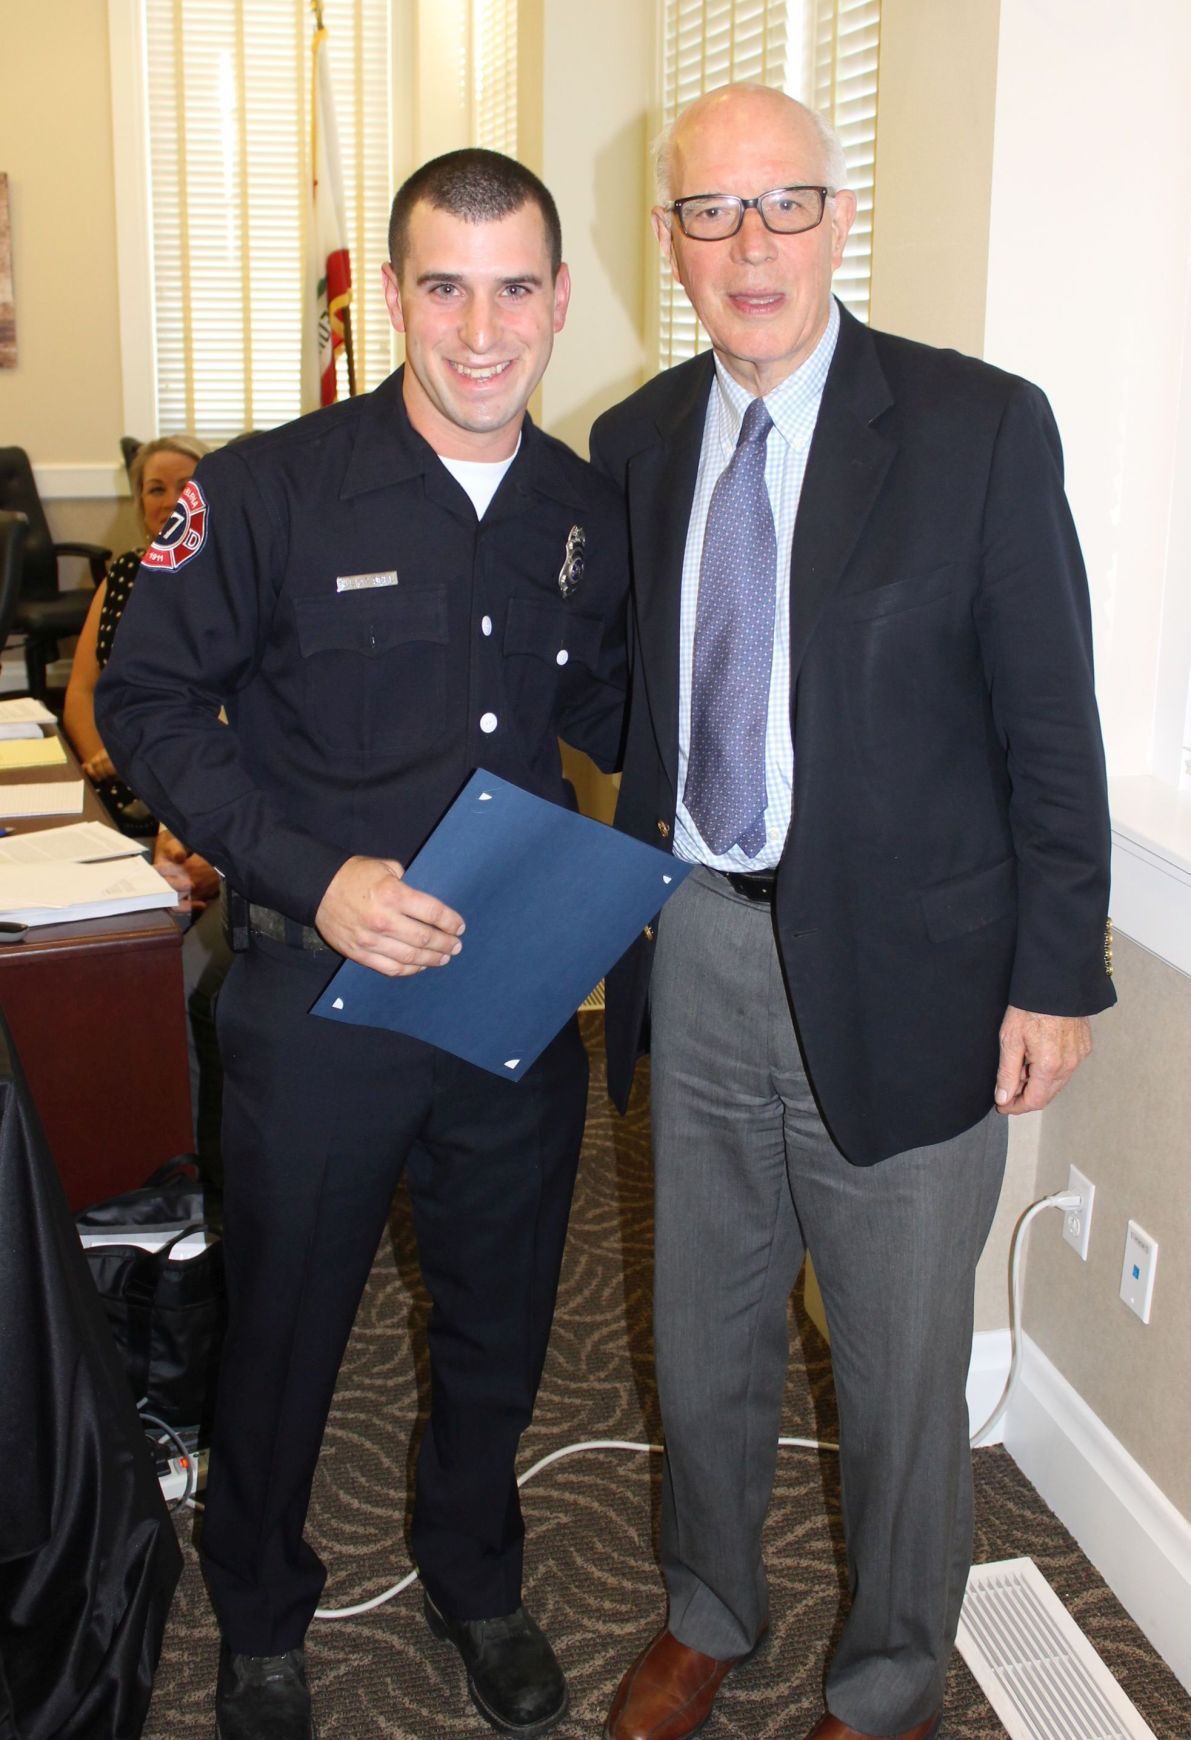 Mayor honors firefighter who pulled woman from burning car